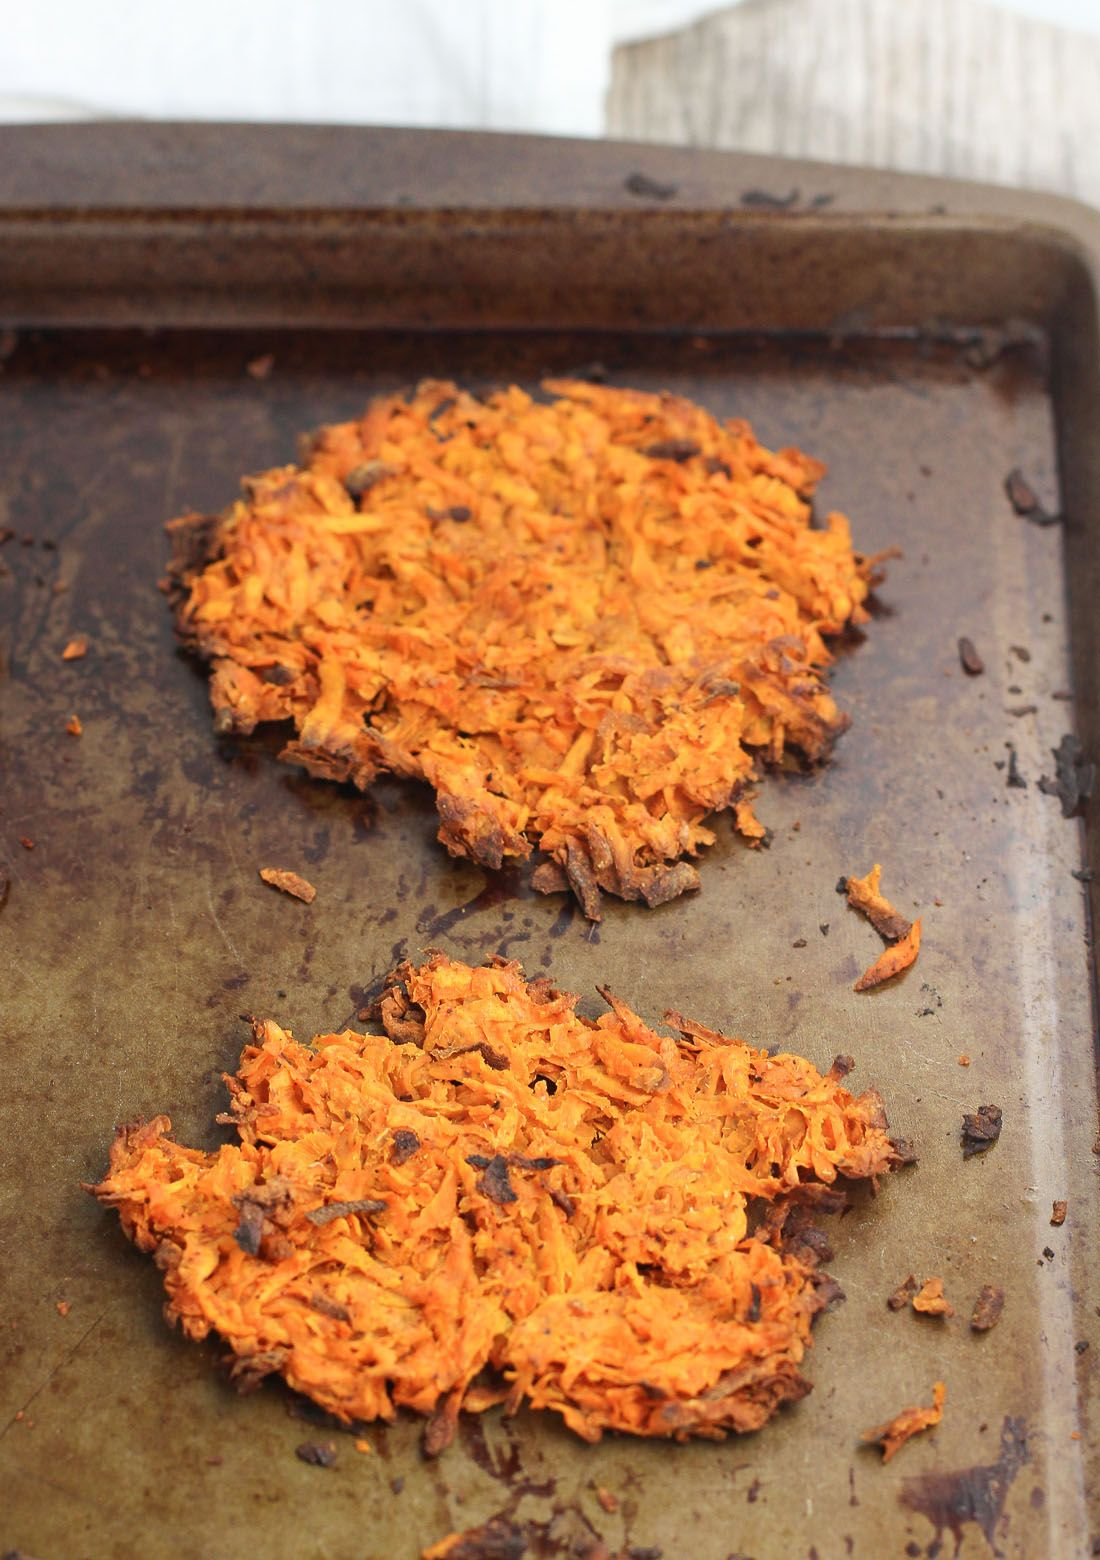 Spiced Sweet Potato Hash Browns - a spin on a breakfast favorite! These hash browns feature a warm spice blend and can be made two ways - either traditionally on the stovetop or baked for a lighter option!